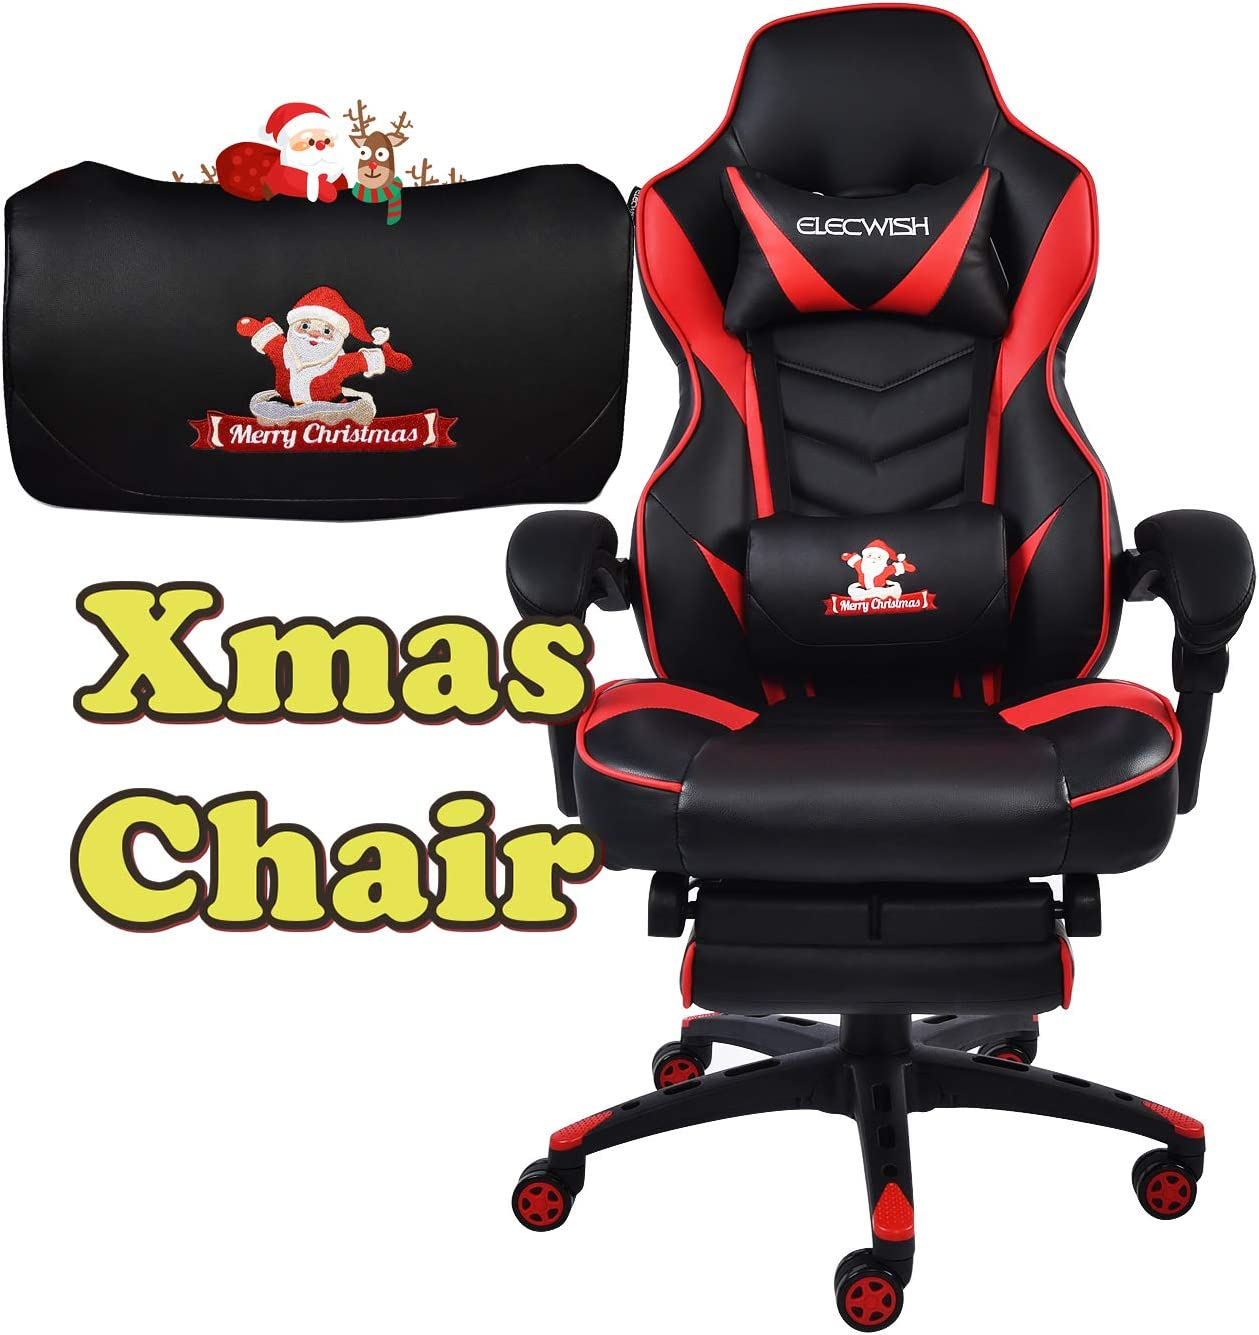 Xmas Edition Gaming Chair Racing Style Reclining Adjustable Swivel Office Chair with Foot Rest, Lumbar Pillow, Headrest Red